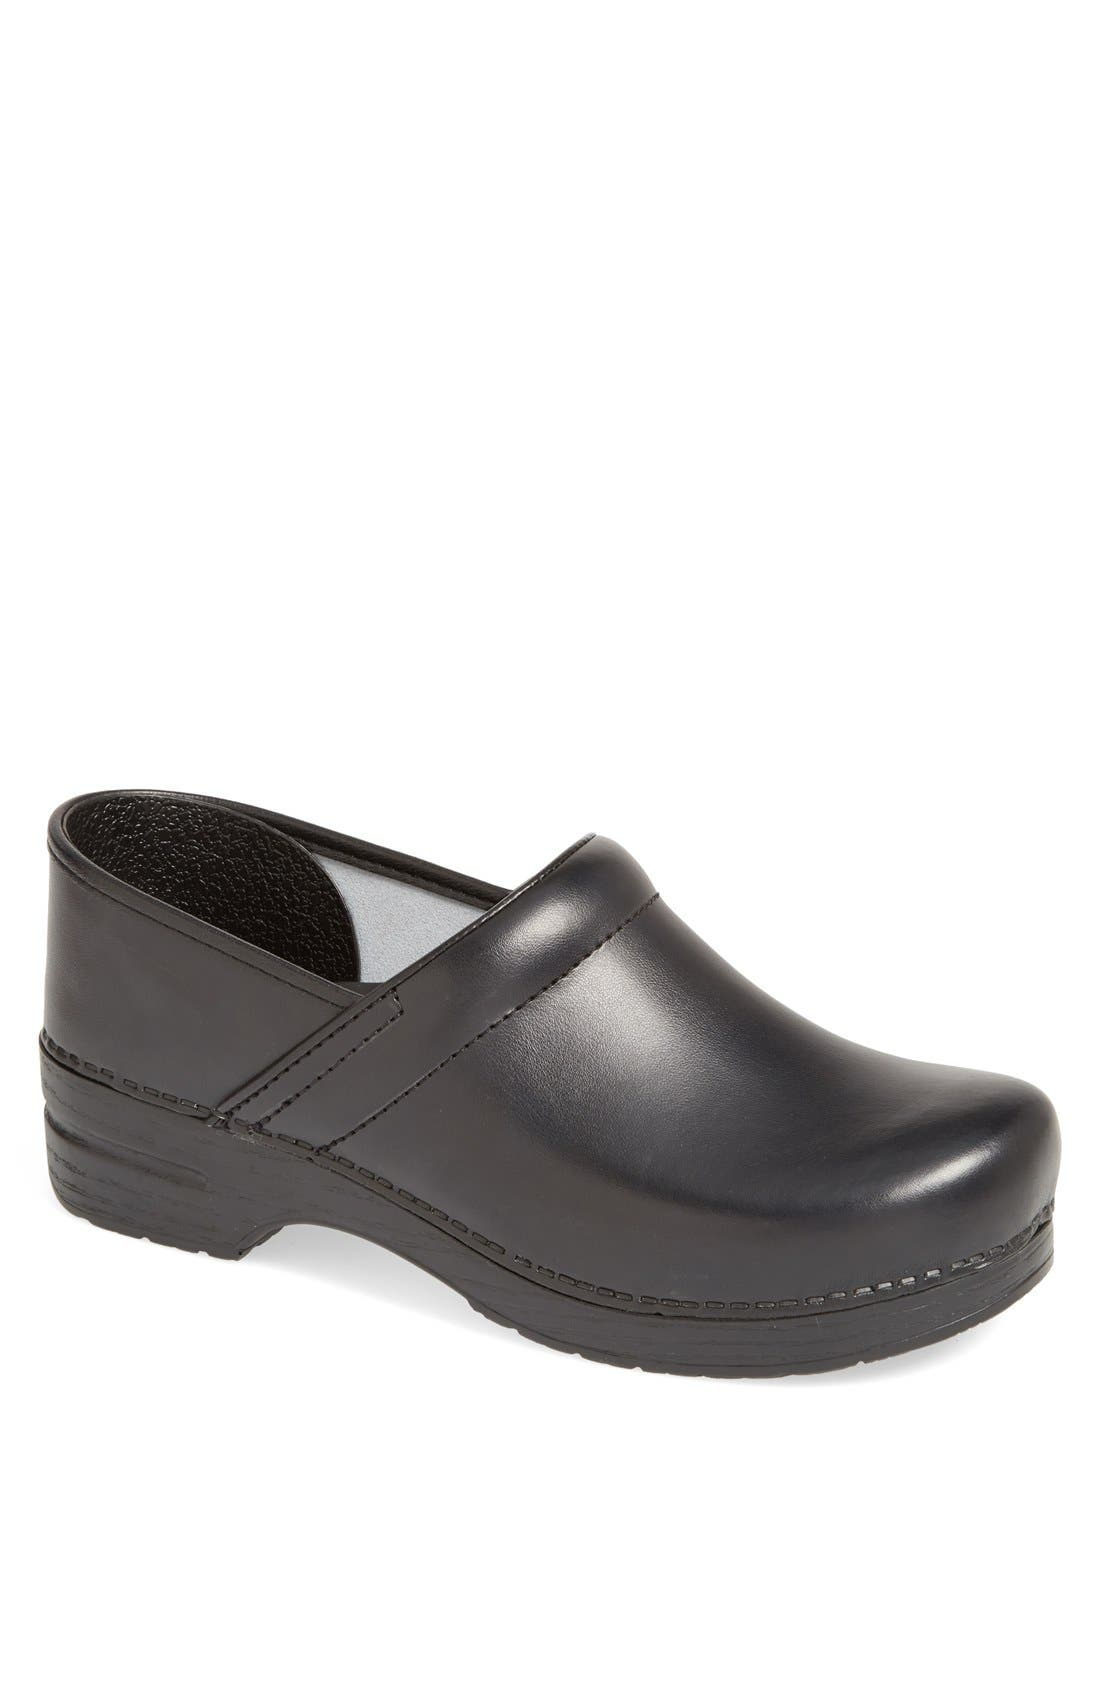 'Professional' Slip-On,                         Main,                         color, Black Box